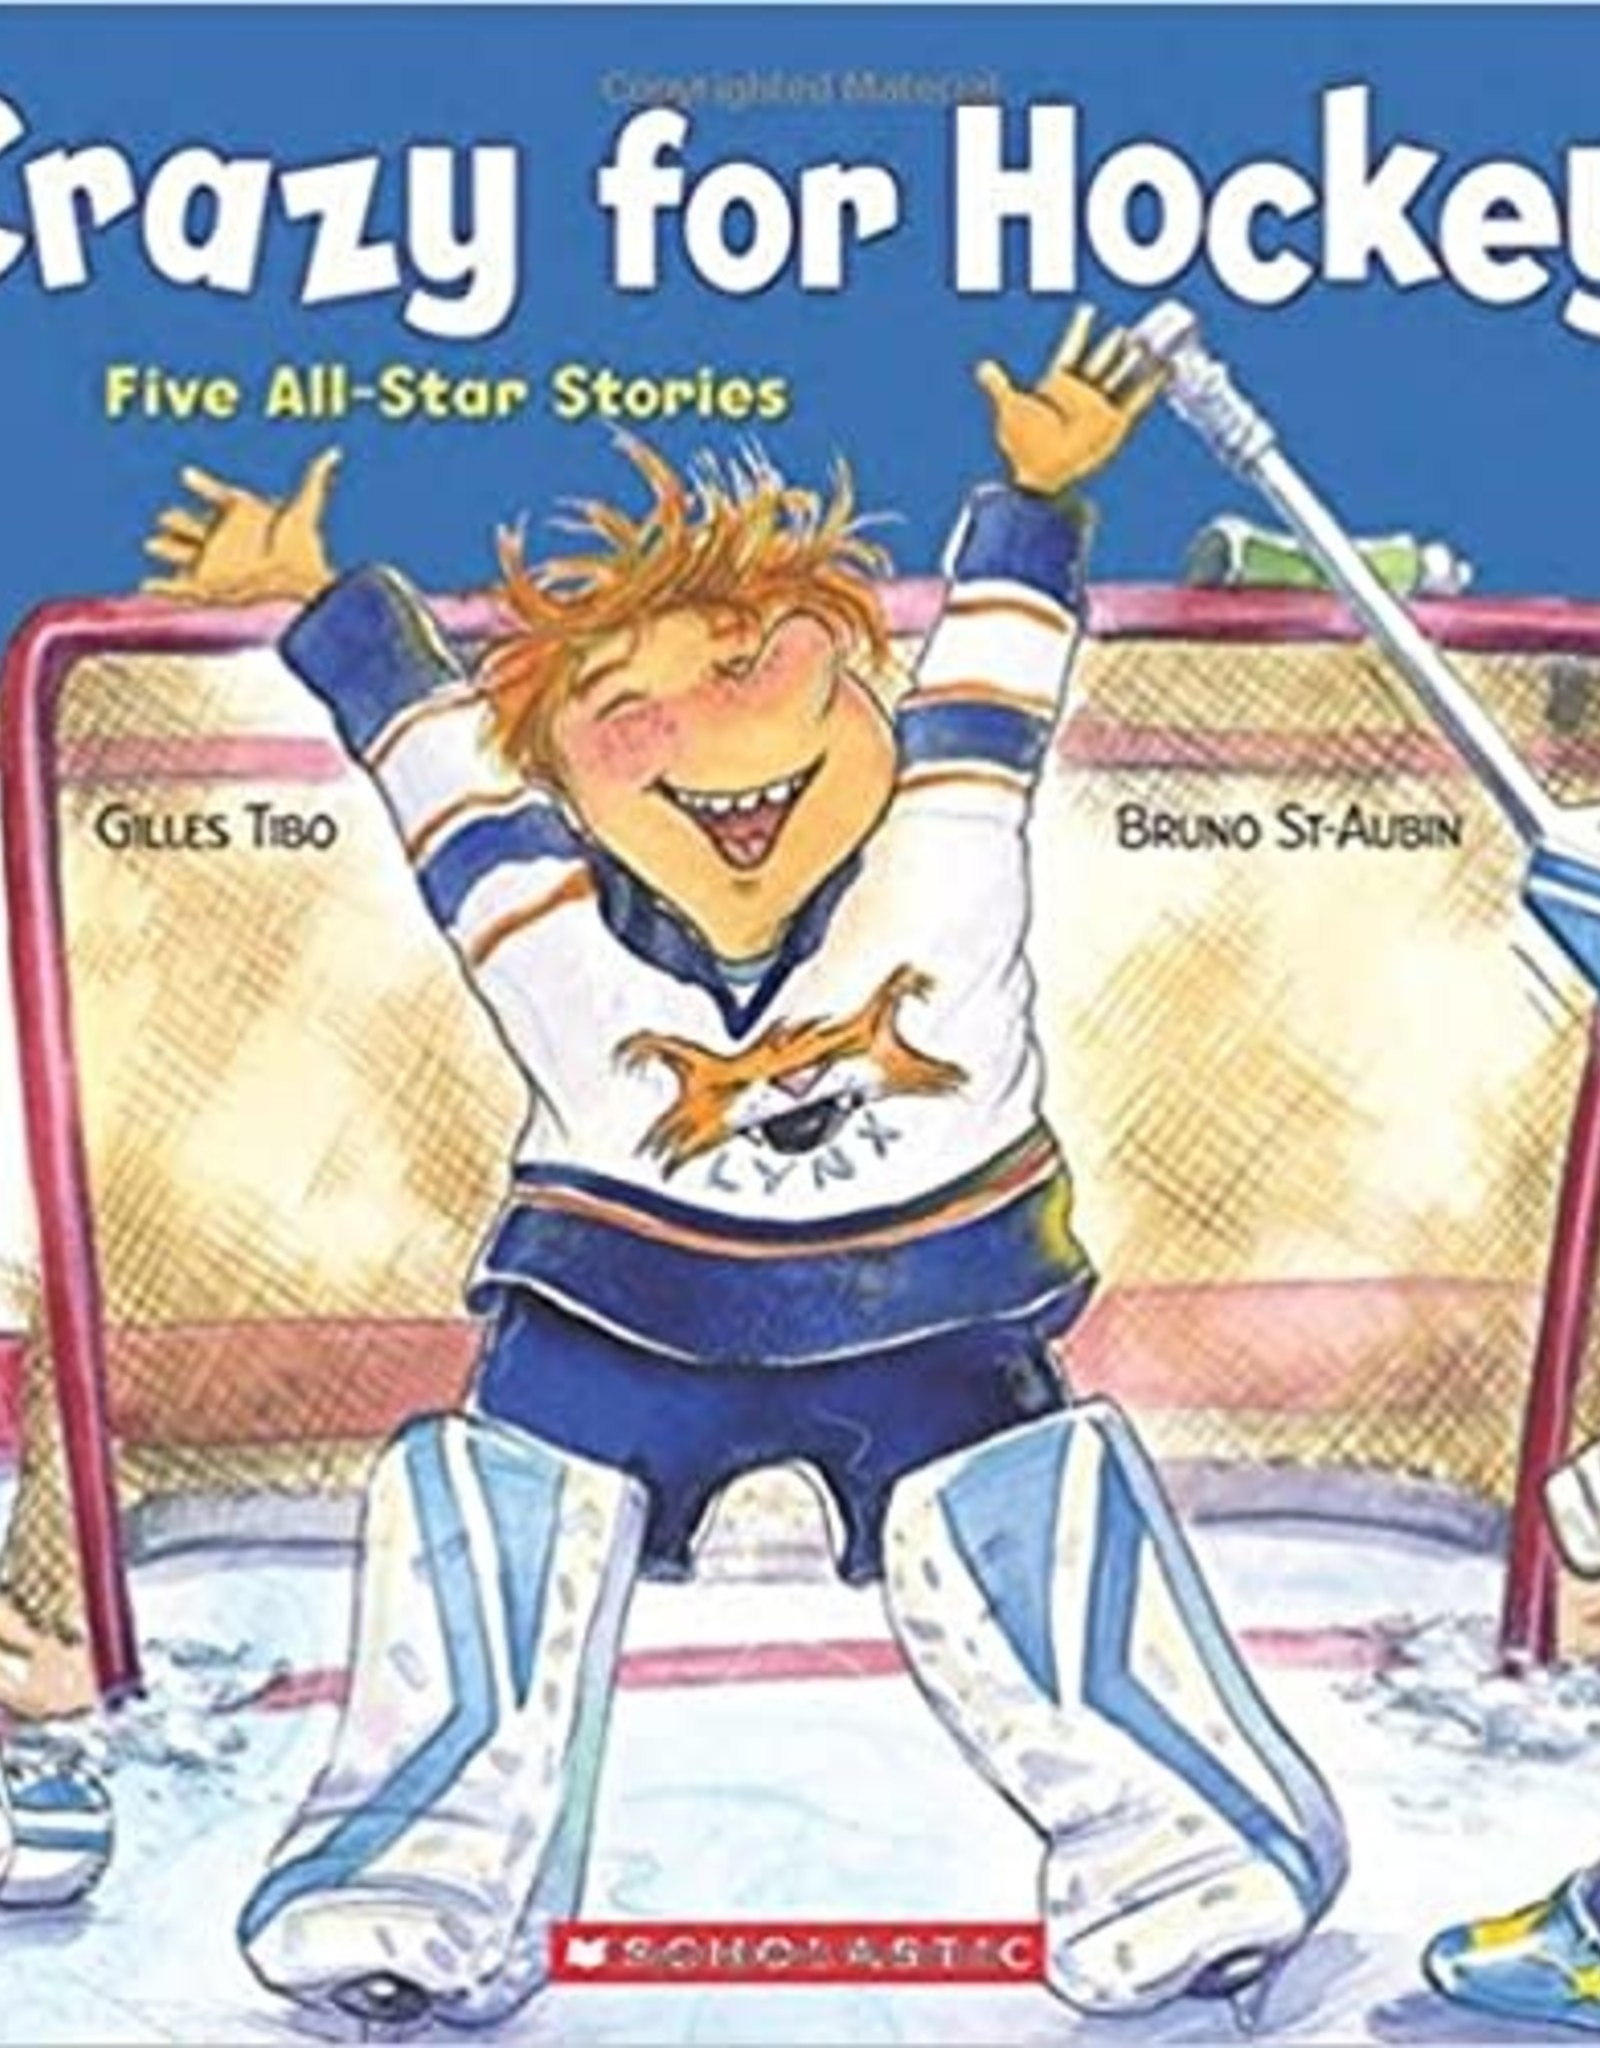 Scholastic Crazy For Hockey! Five All-Star Stories